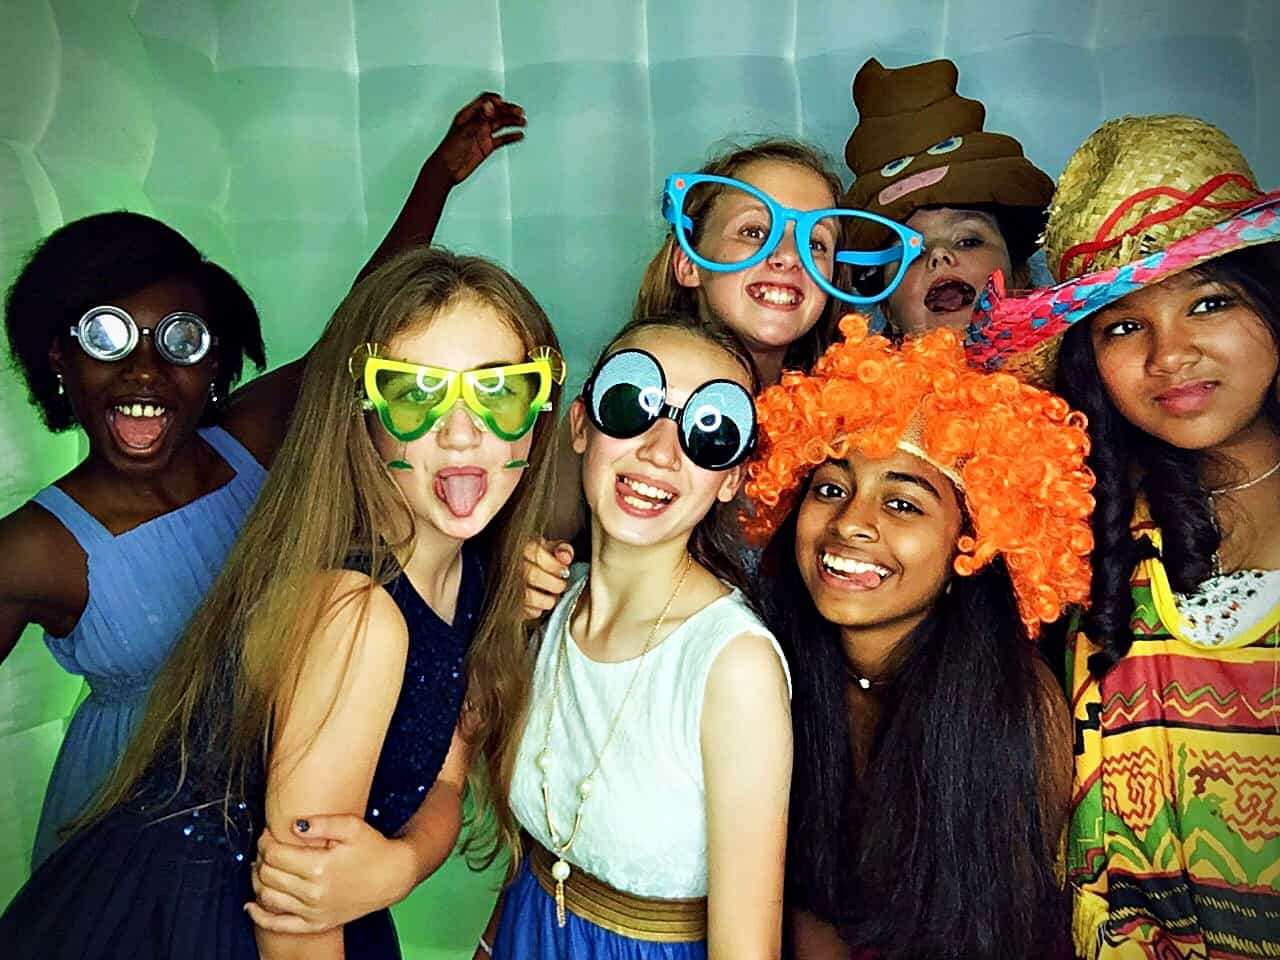 photo booths for school leavers parties in Essex - Moji Entertainer